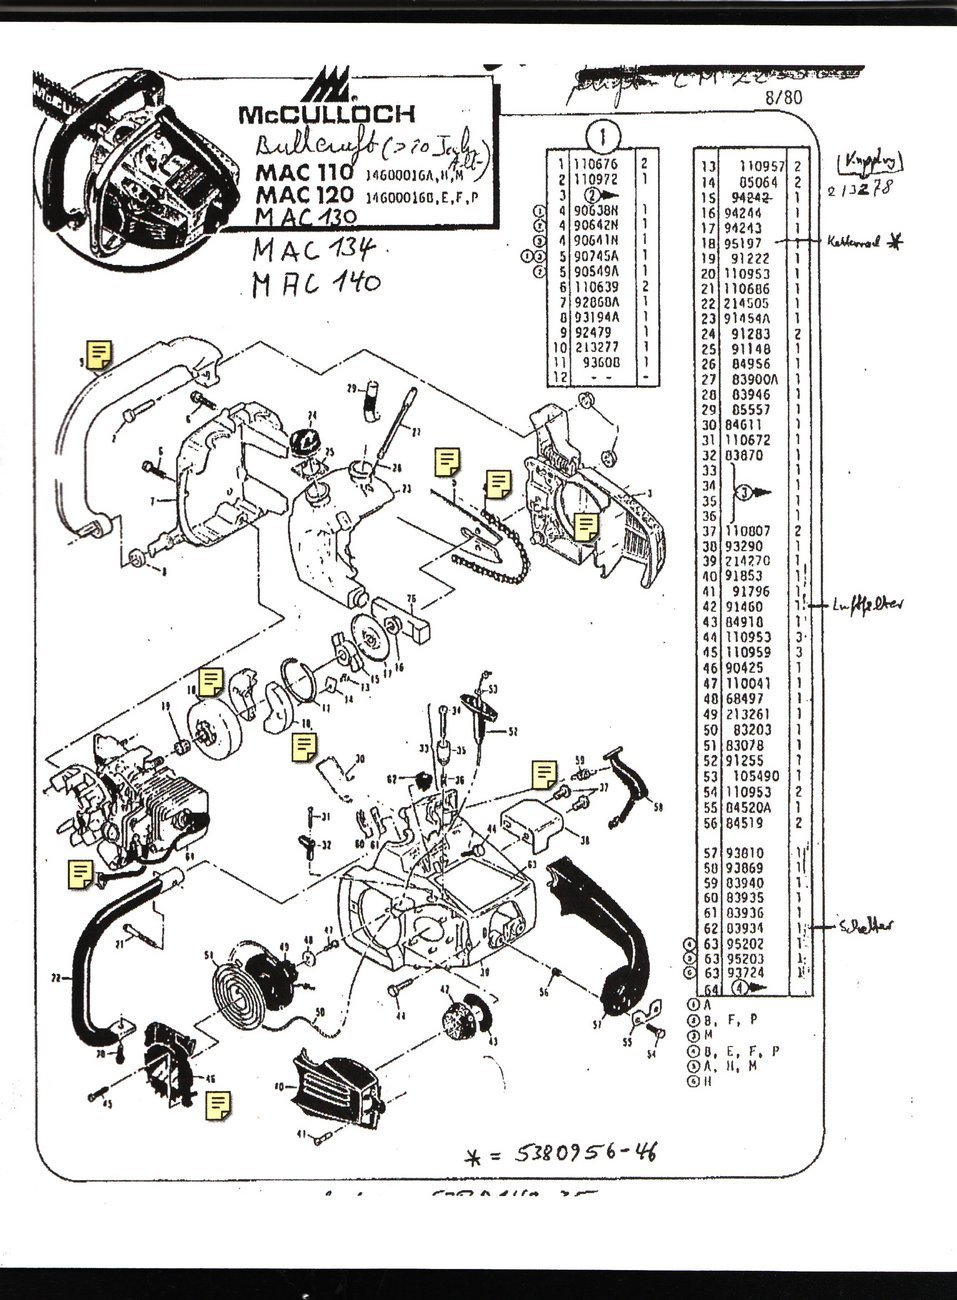 coil replacement have engine and general assmbly pictures